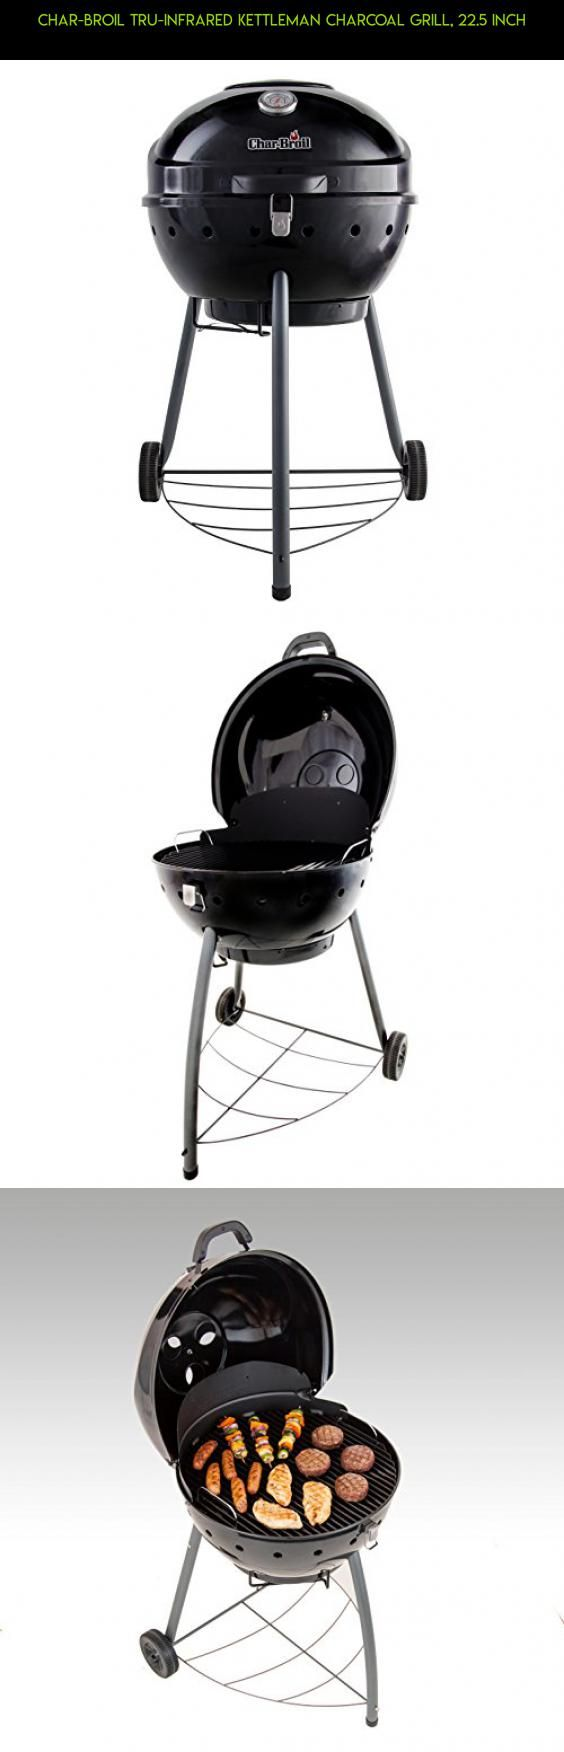 Char-Broil TRU-Infrared Kettleman Charcoal Grill, 22.5 Inch #racing #tech #kit #products #plans #charcoal #parts #technology #gadgets #camera #clearance #shopping #drone #on #grills #fpv